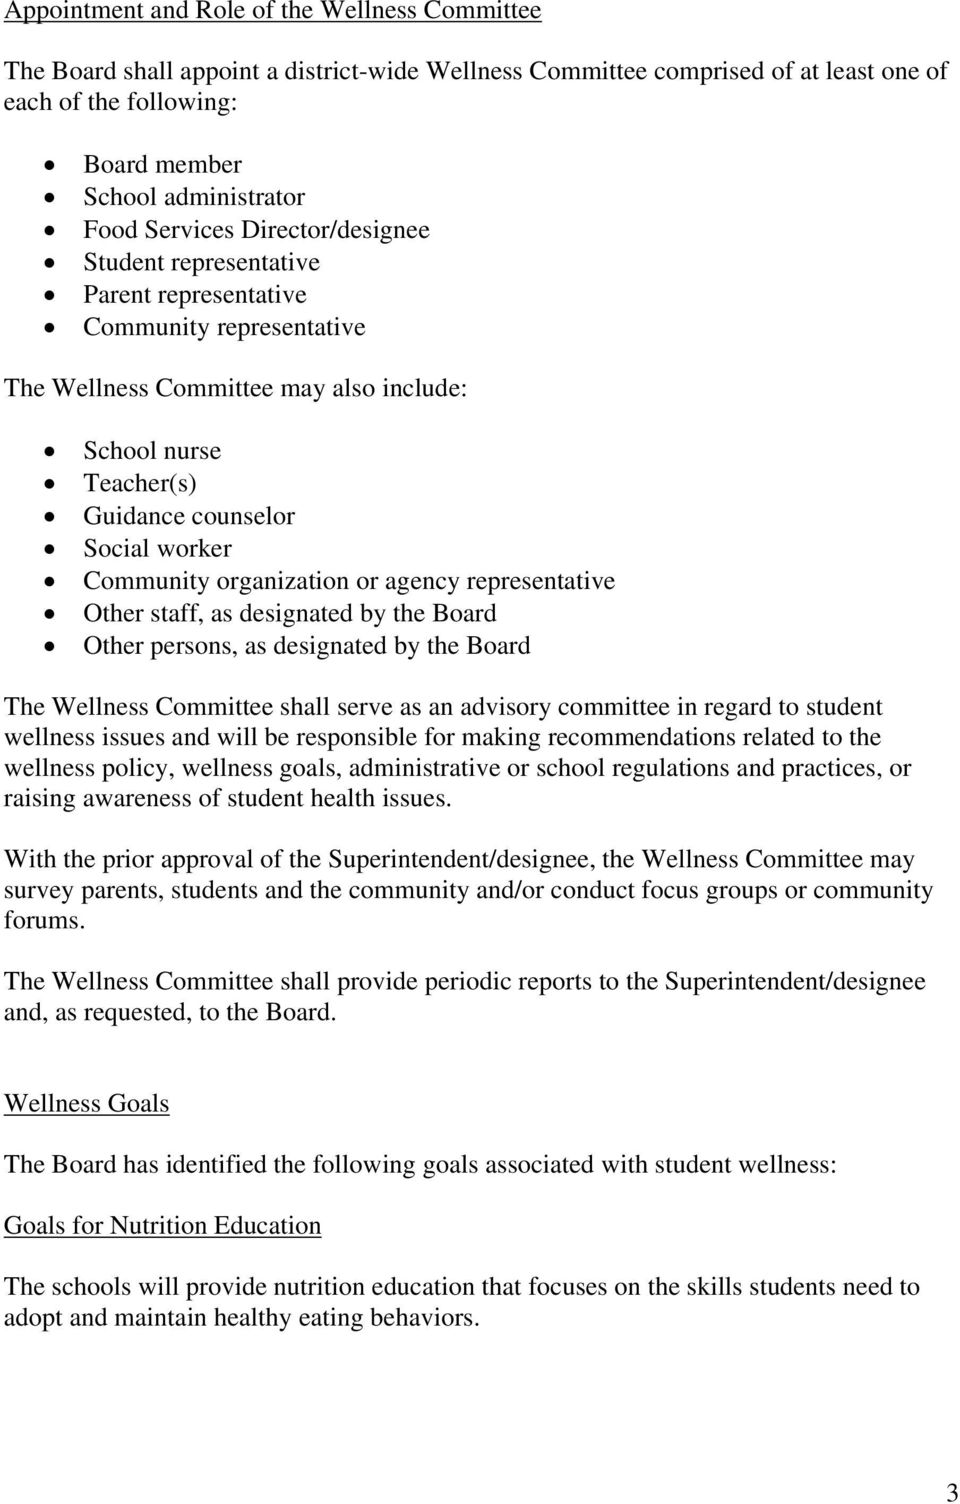 Community organization or agency representative Other staff, as designated by the Board Other persons, as designated by the Board The Wellness Committee shall serve as an advisory committee in regard